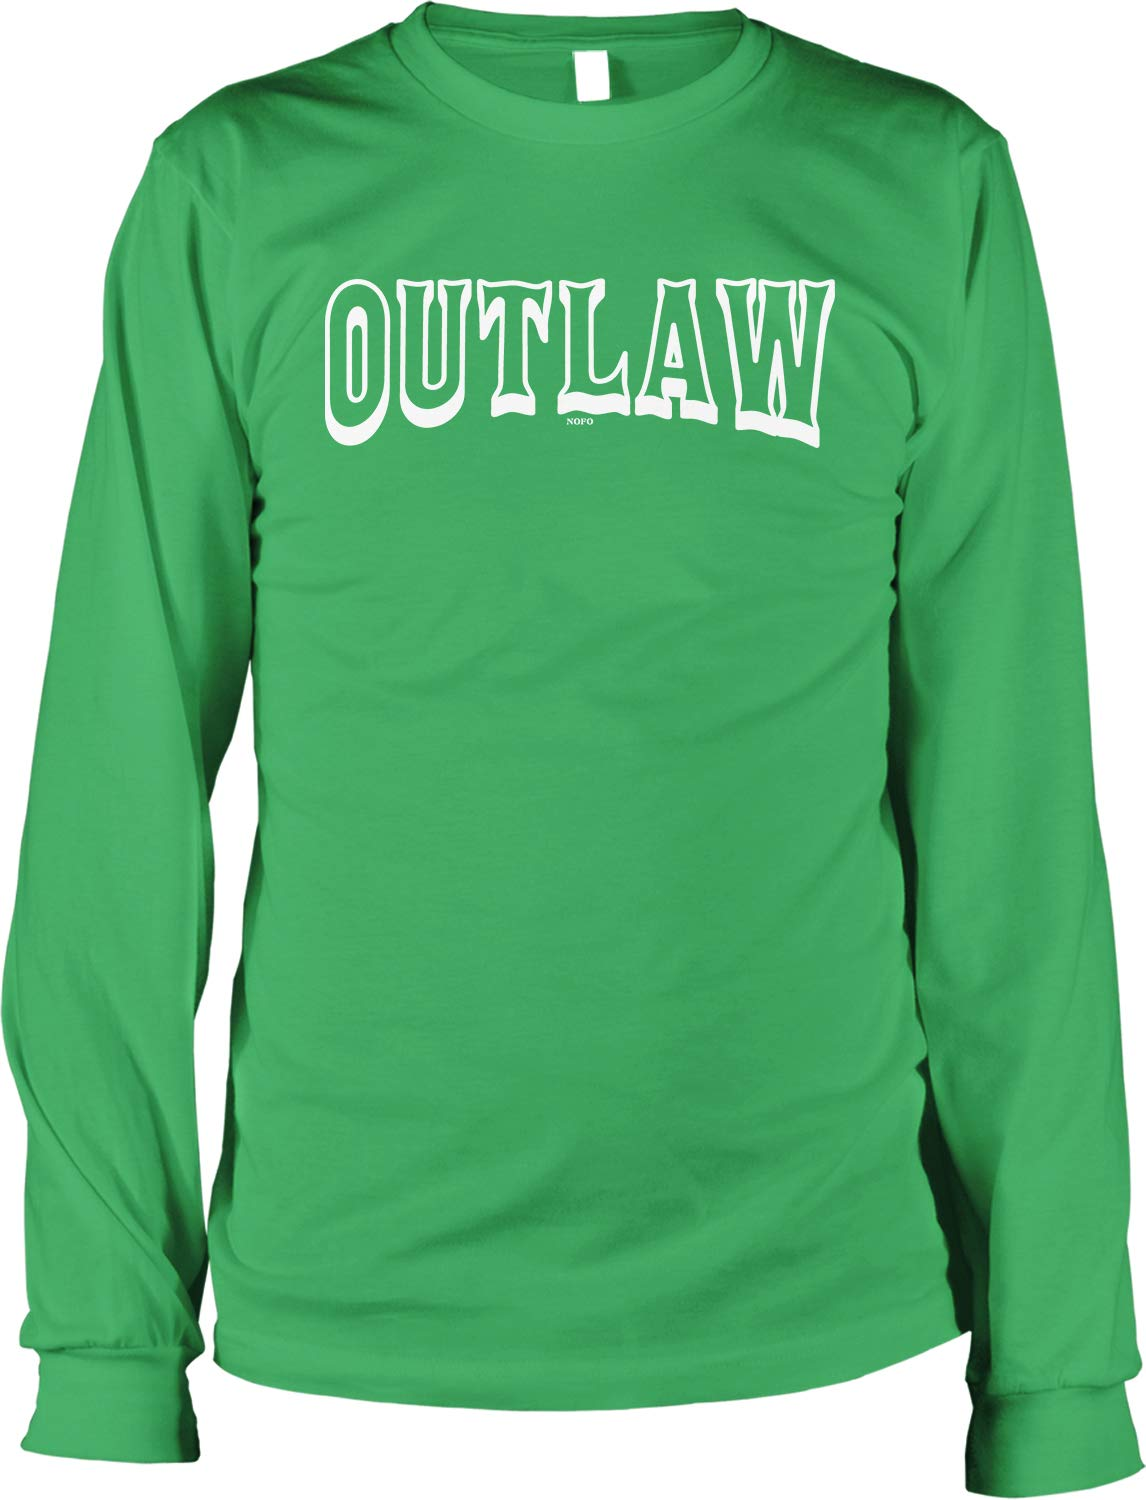 Outlaw S Shirt